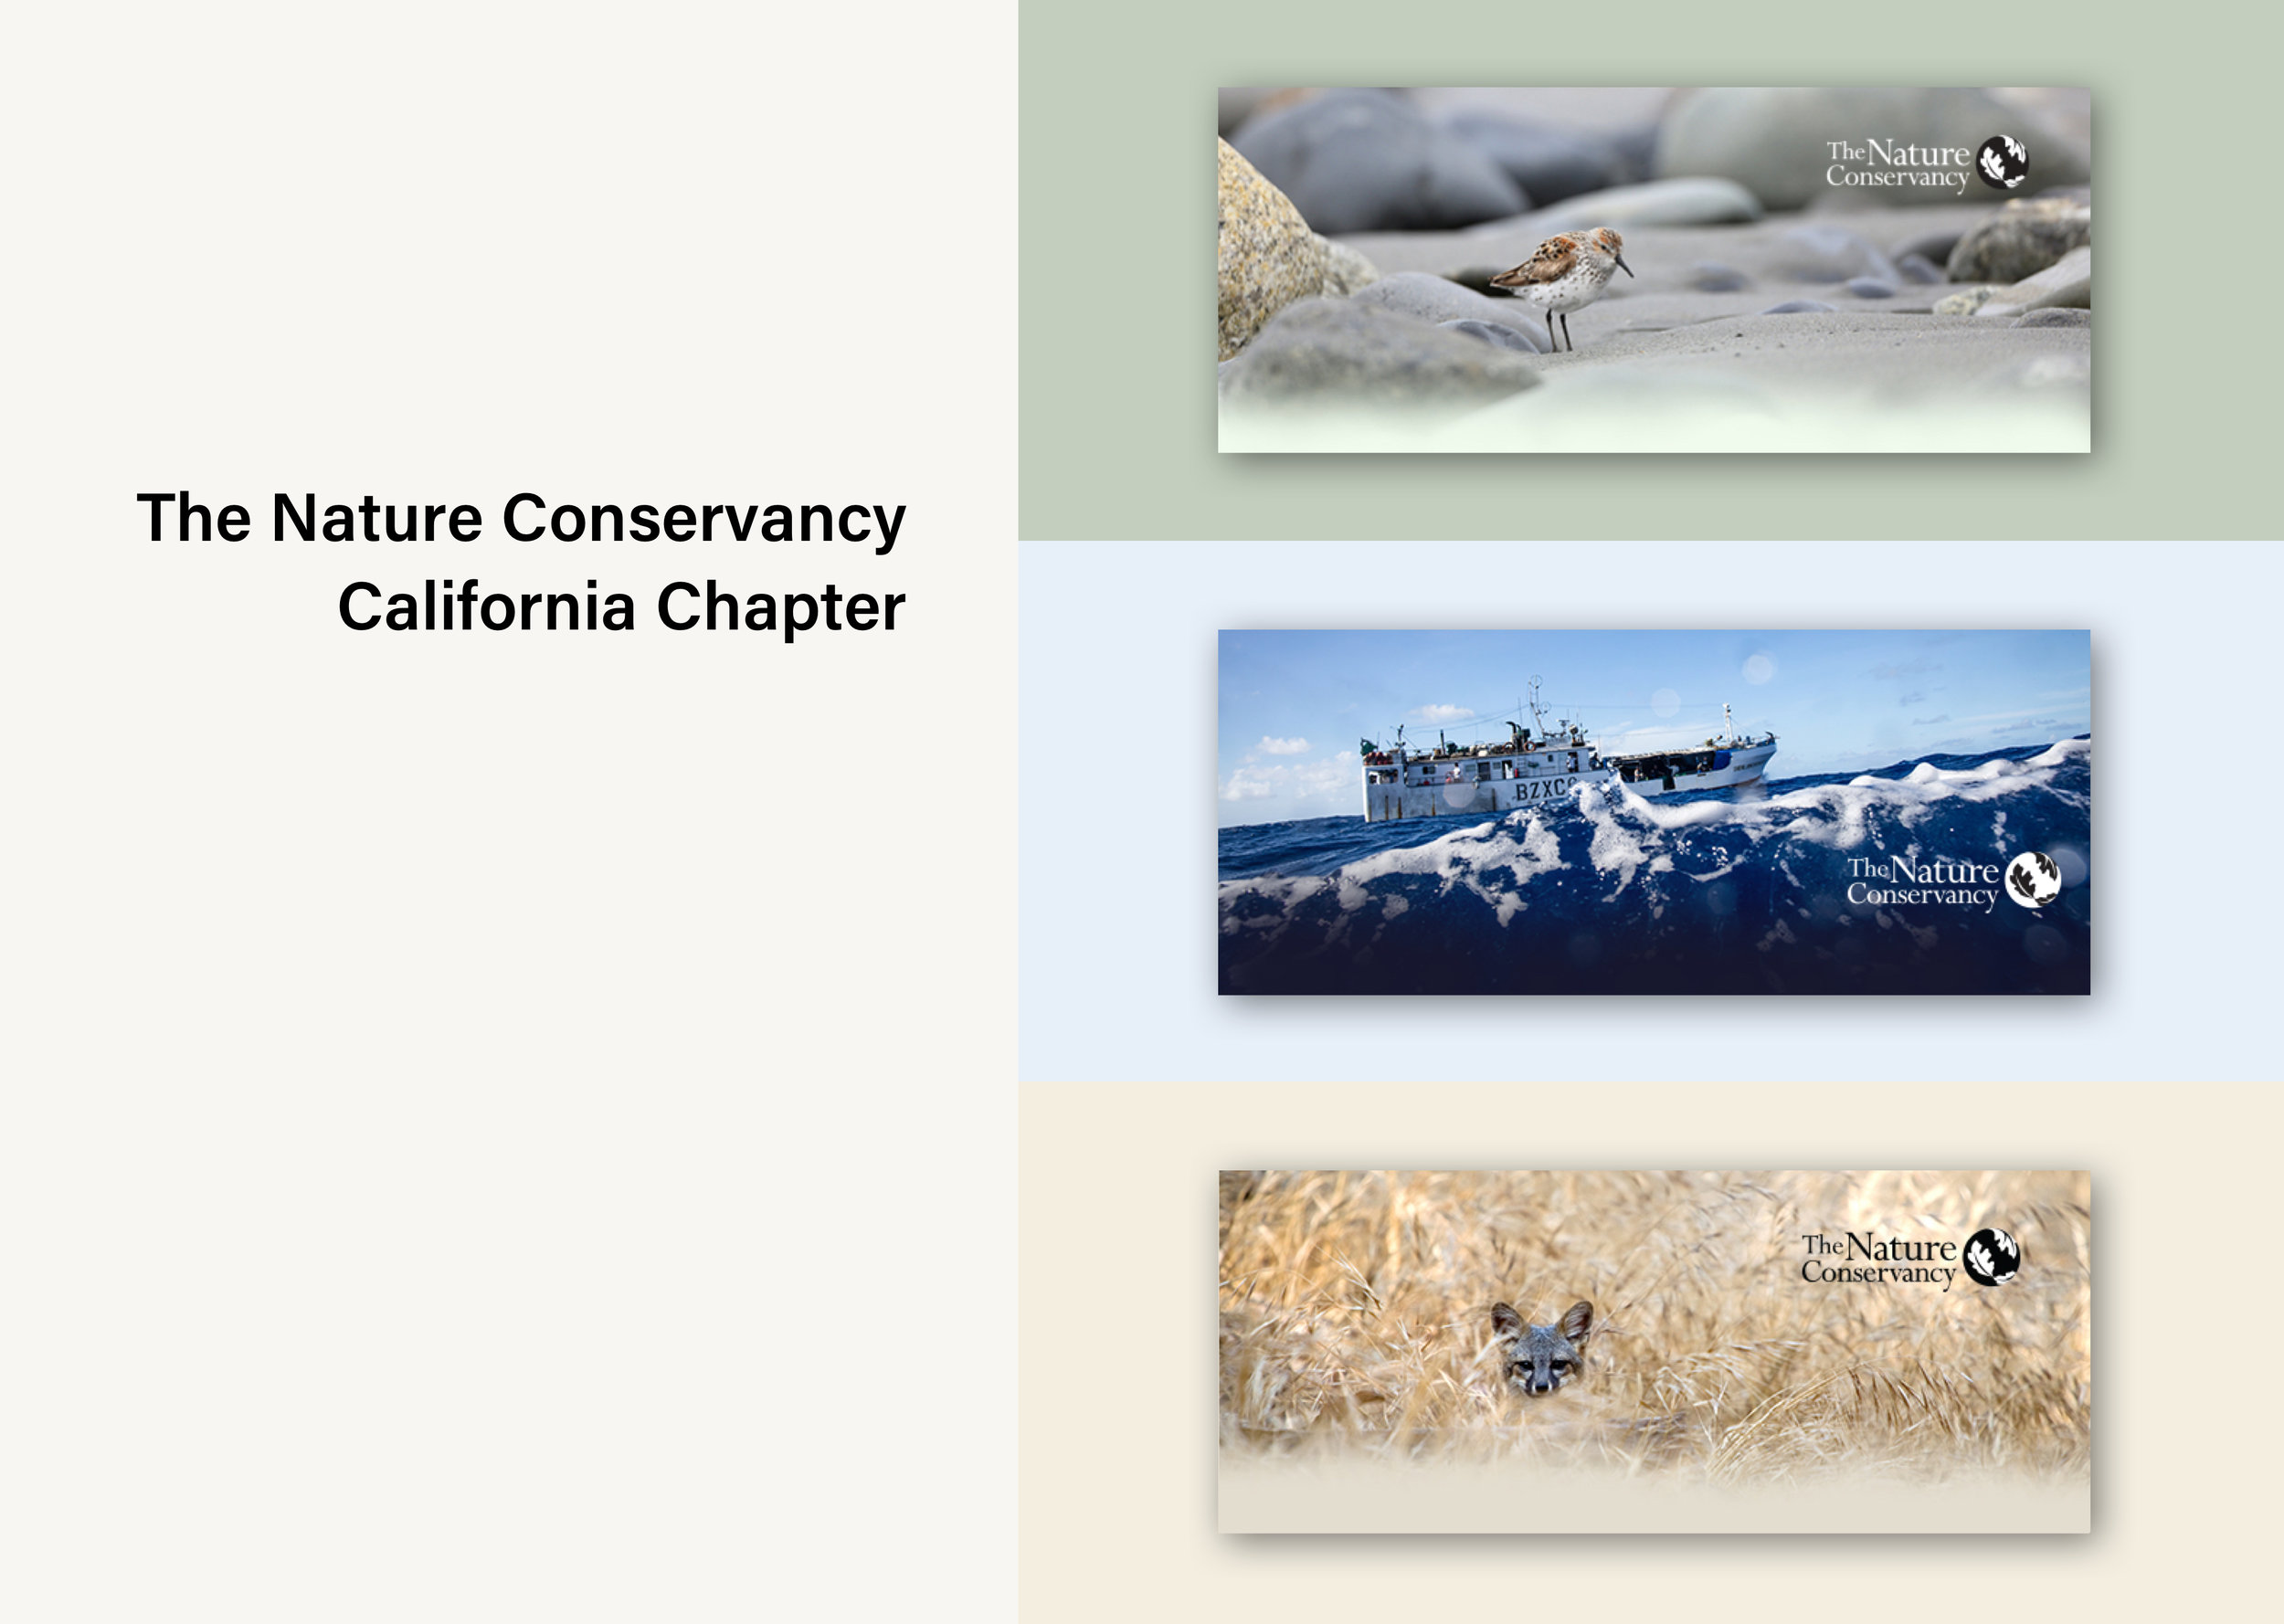 The Nature Conservancy in California Responsive Email Template - Implementing brand guidelines in marketing campaign emailsEmail Template | Photography Direction | Responsive